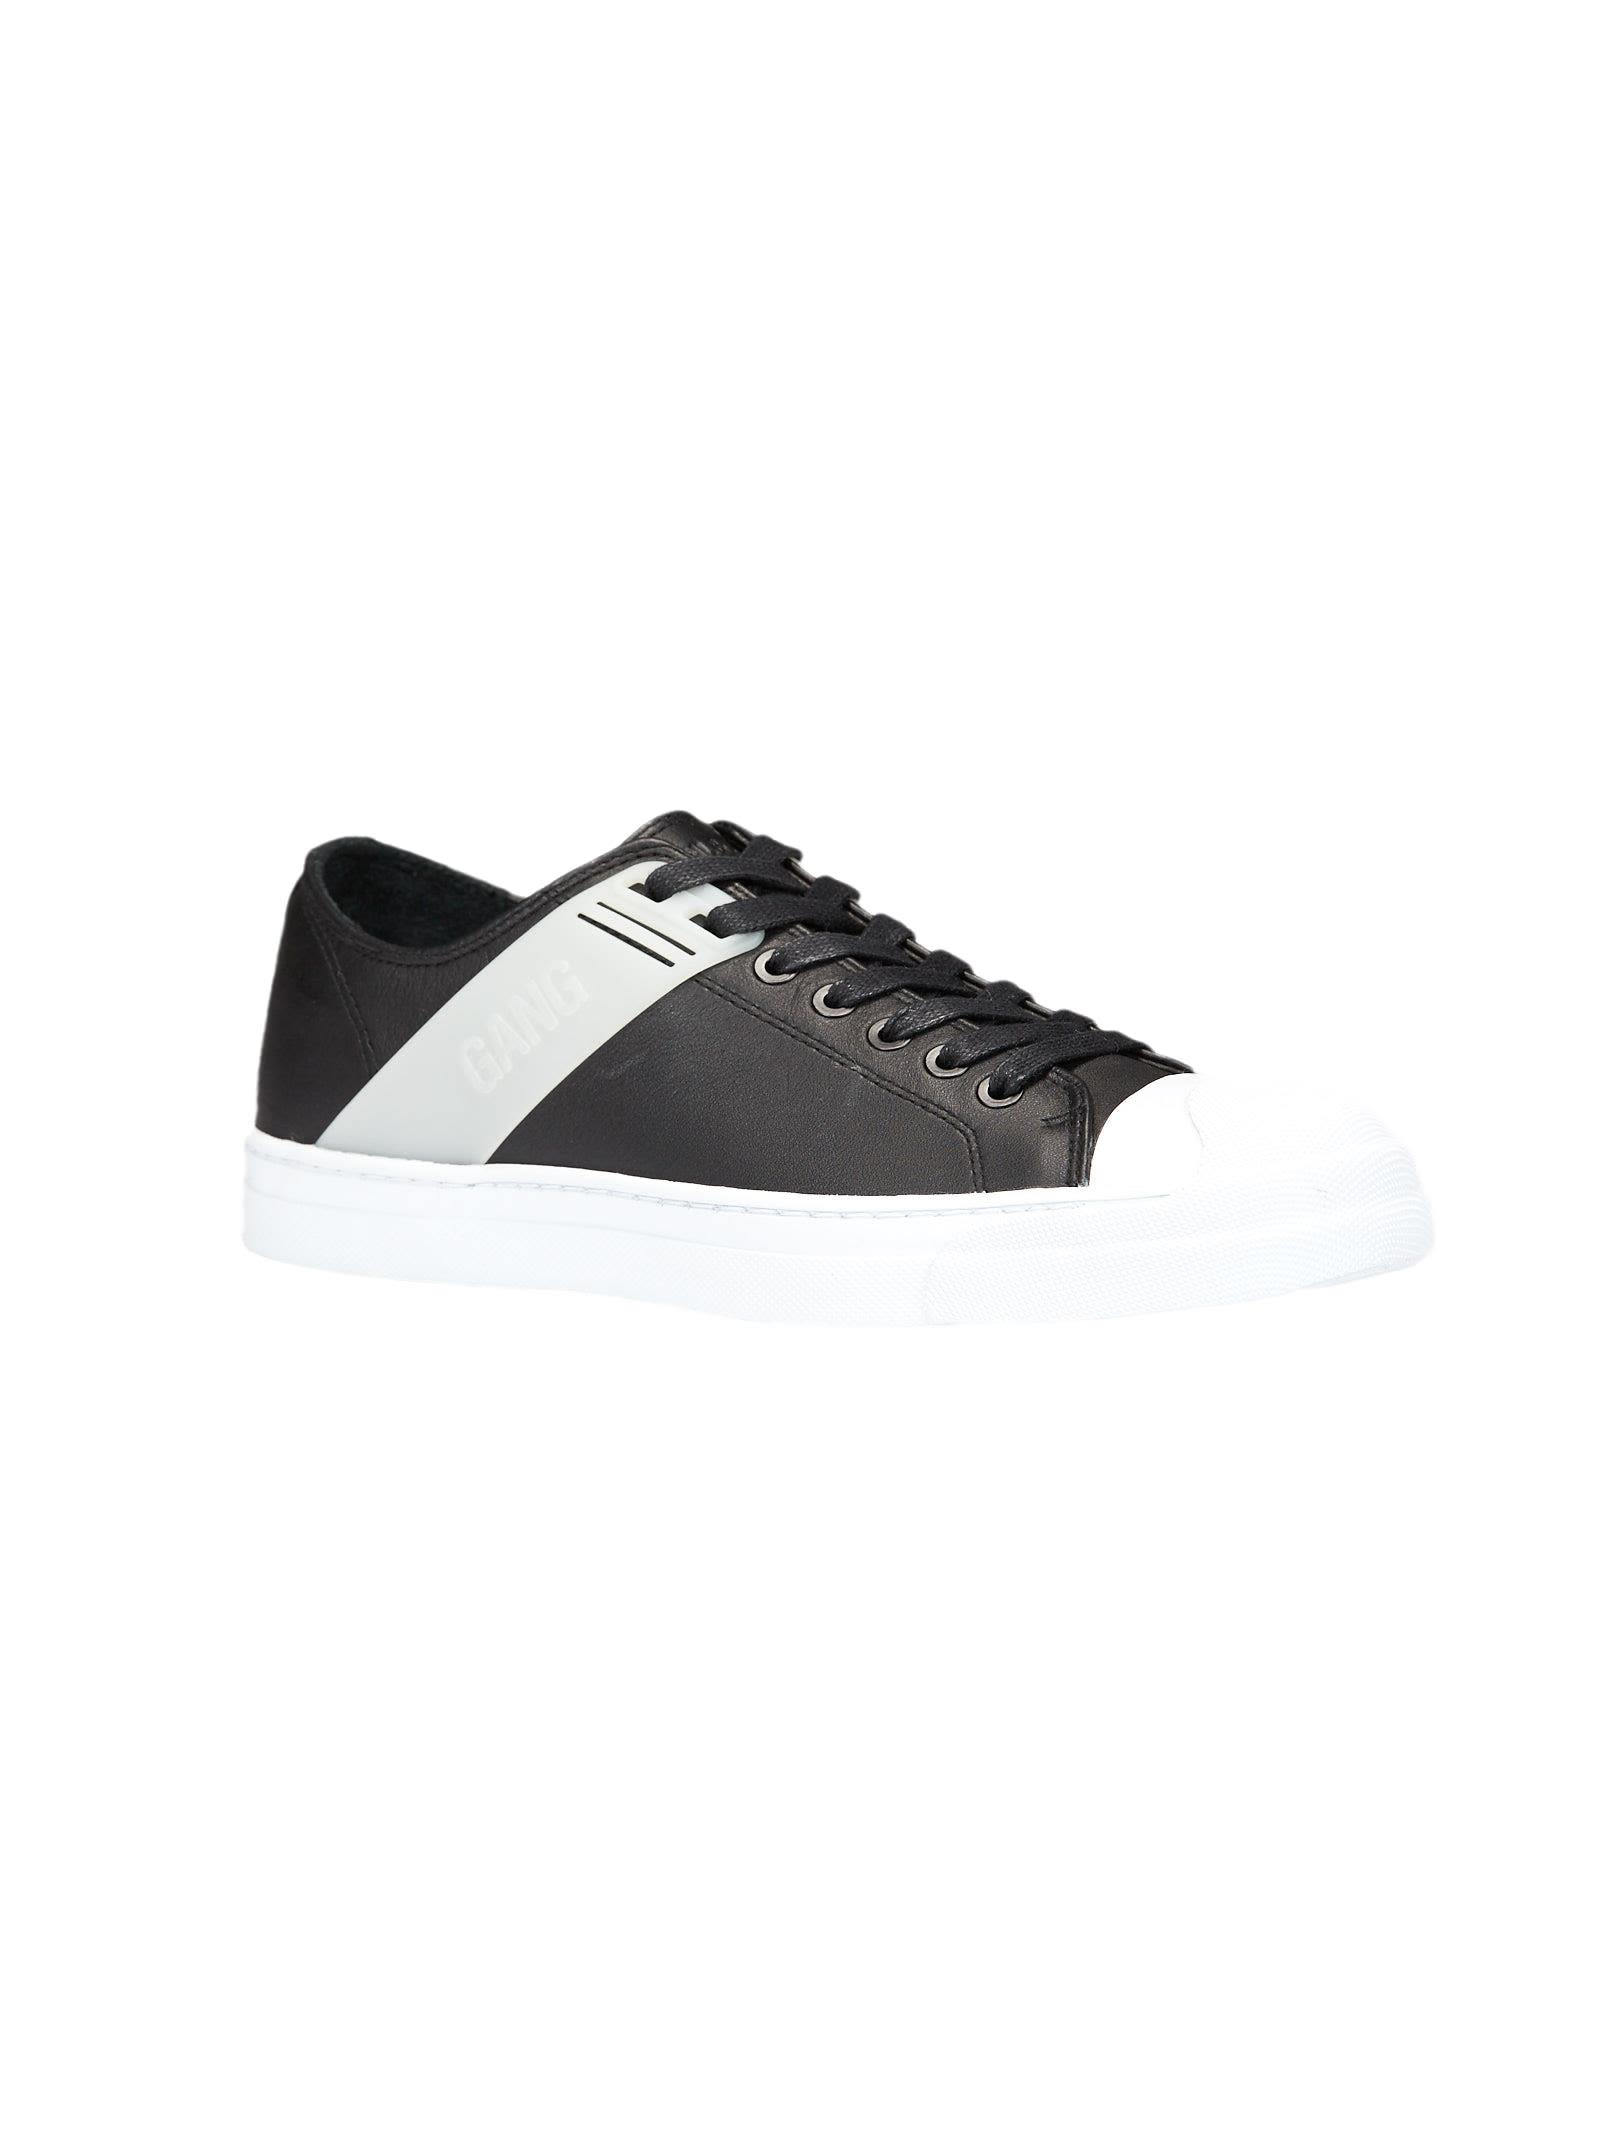 Gang sneakers - White Neil Barrett Outlet Classic Free Shipping Official Free Shipping Visit New 9mPUb